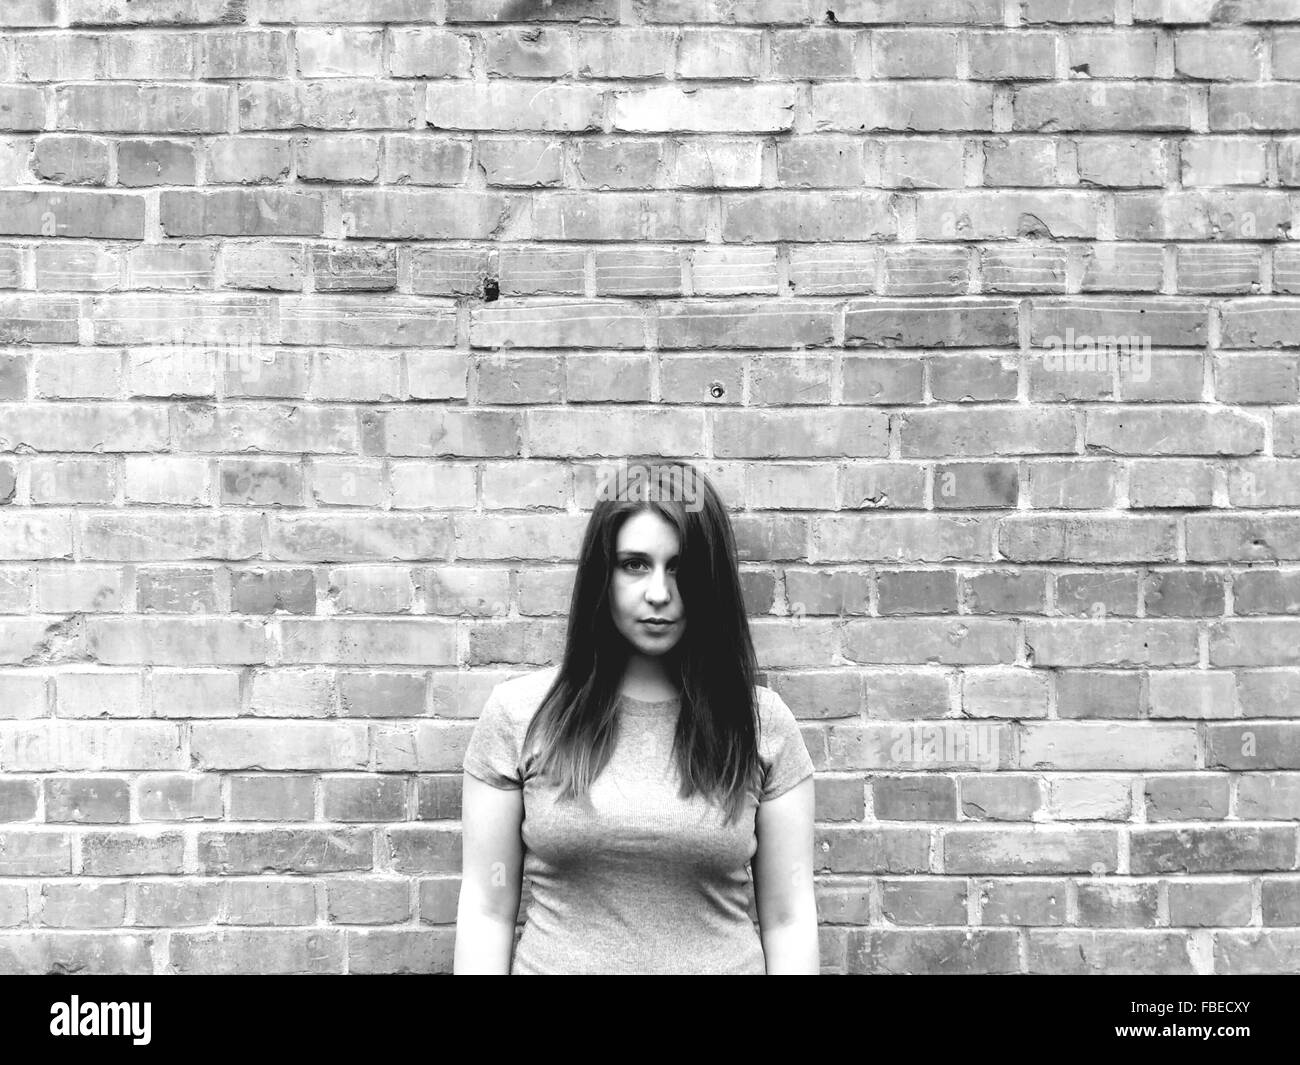 Portrait Of Woman Standing Against Brick Wall - Stock Image